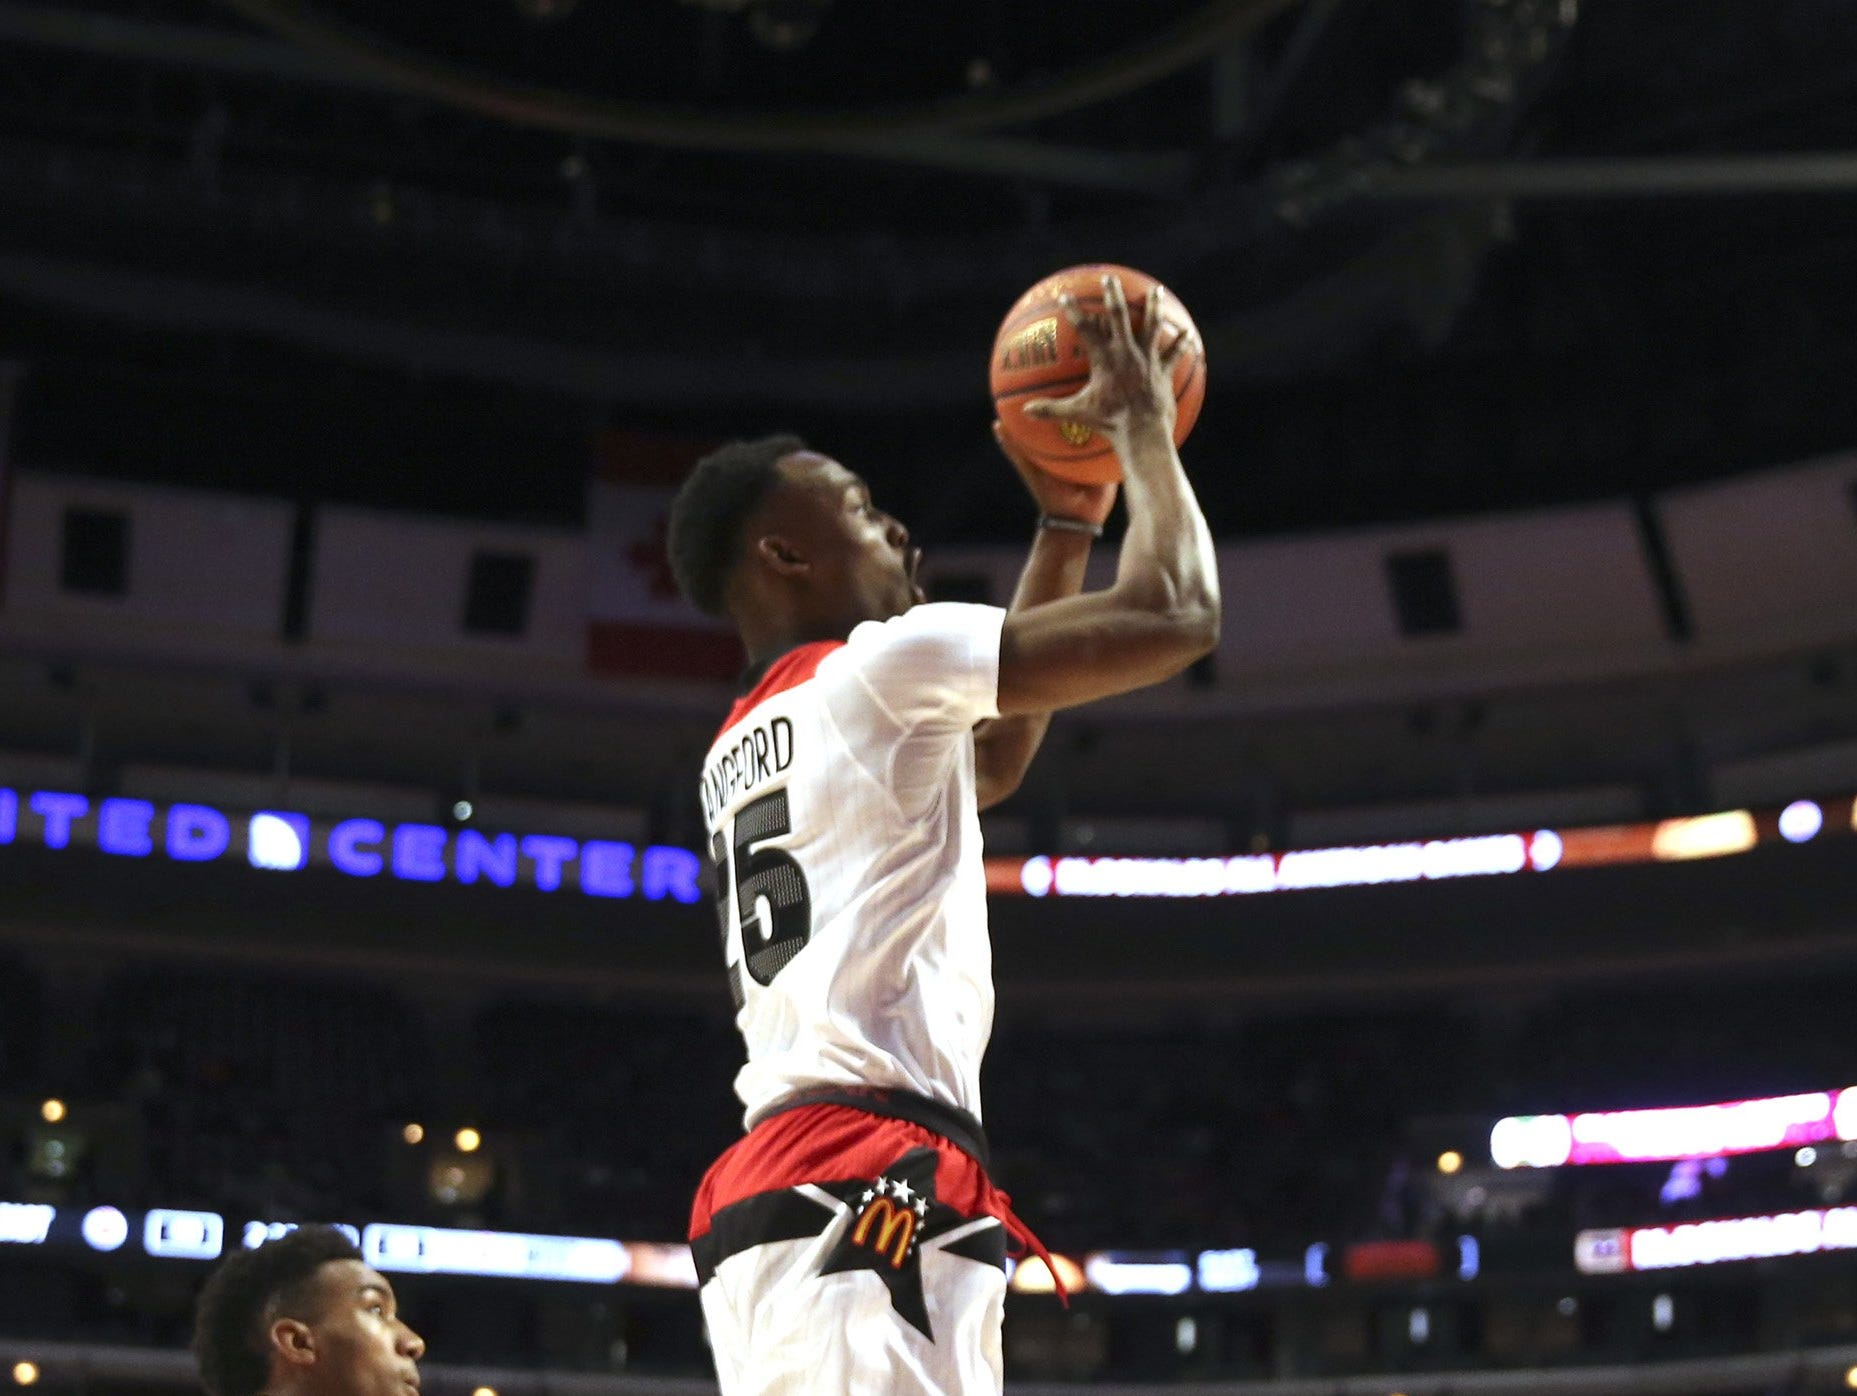 The West's Joshua Langford (25) goes to the basket against Team East during the first half of the McDonald's Boys All American game at the United Center in Chicago on Wednesday, March 30, 2016.